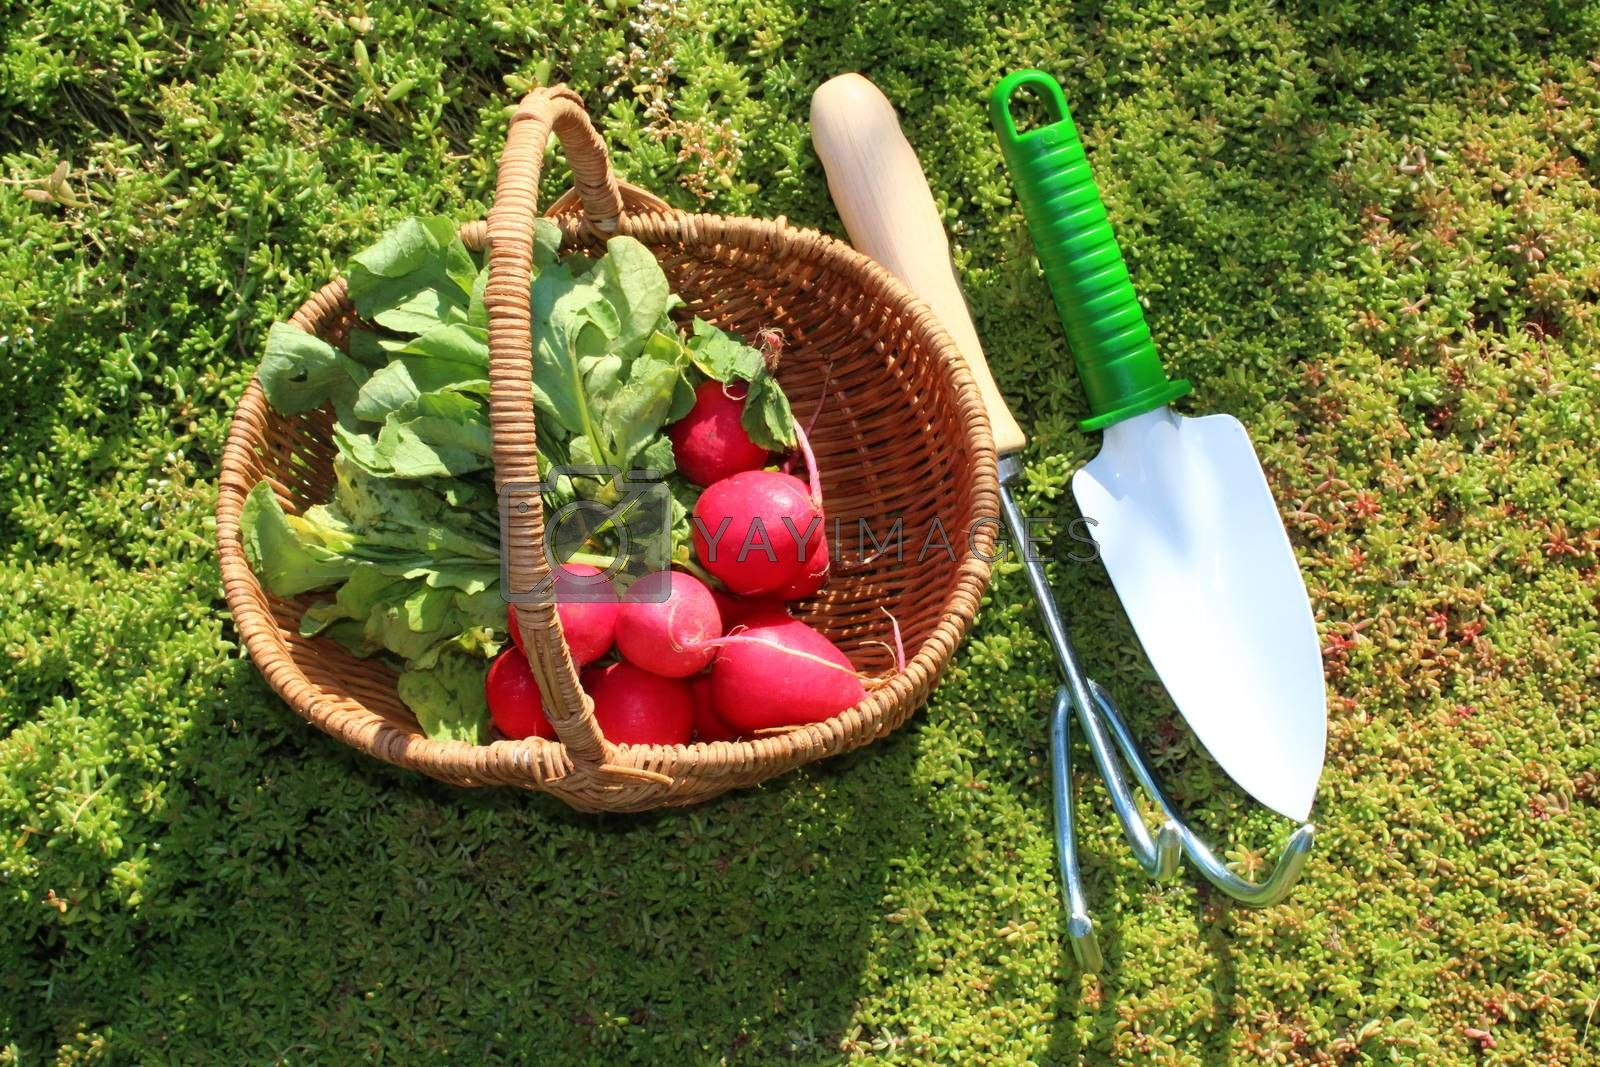 Royalty free image of radish in a basket in the garden by martina_unbehauen